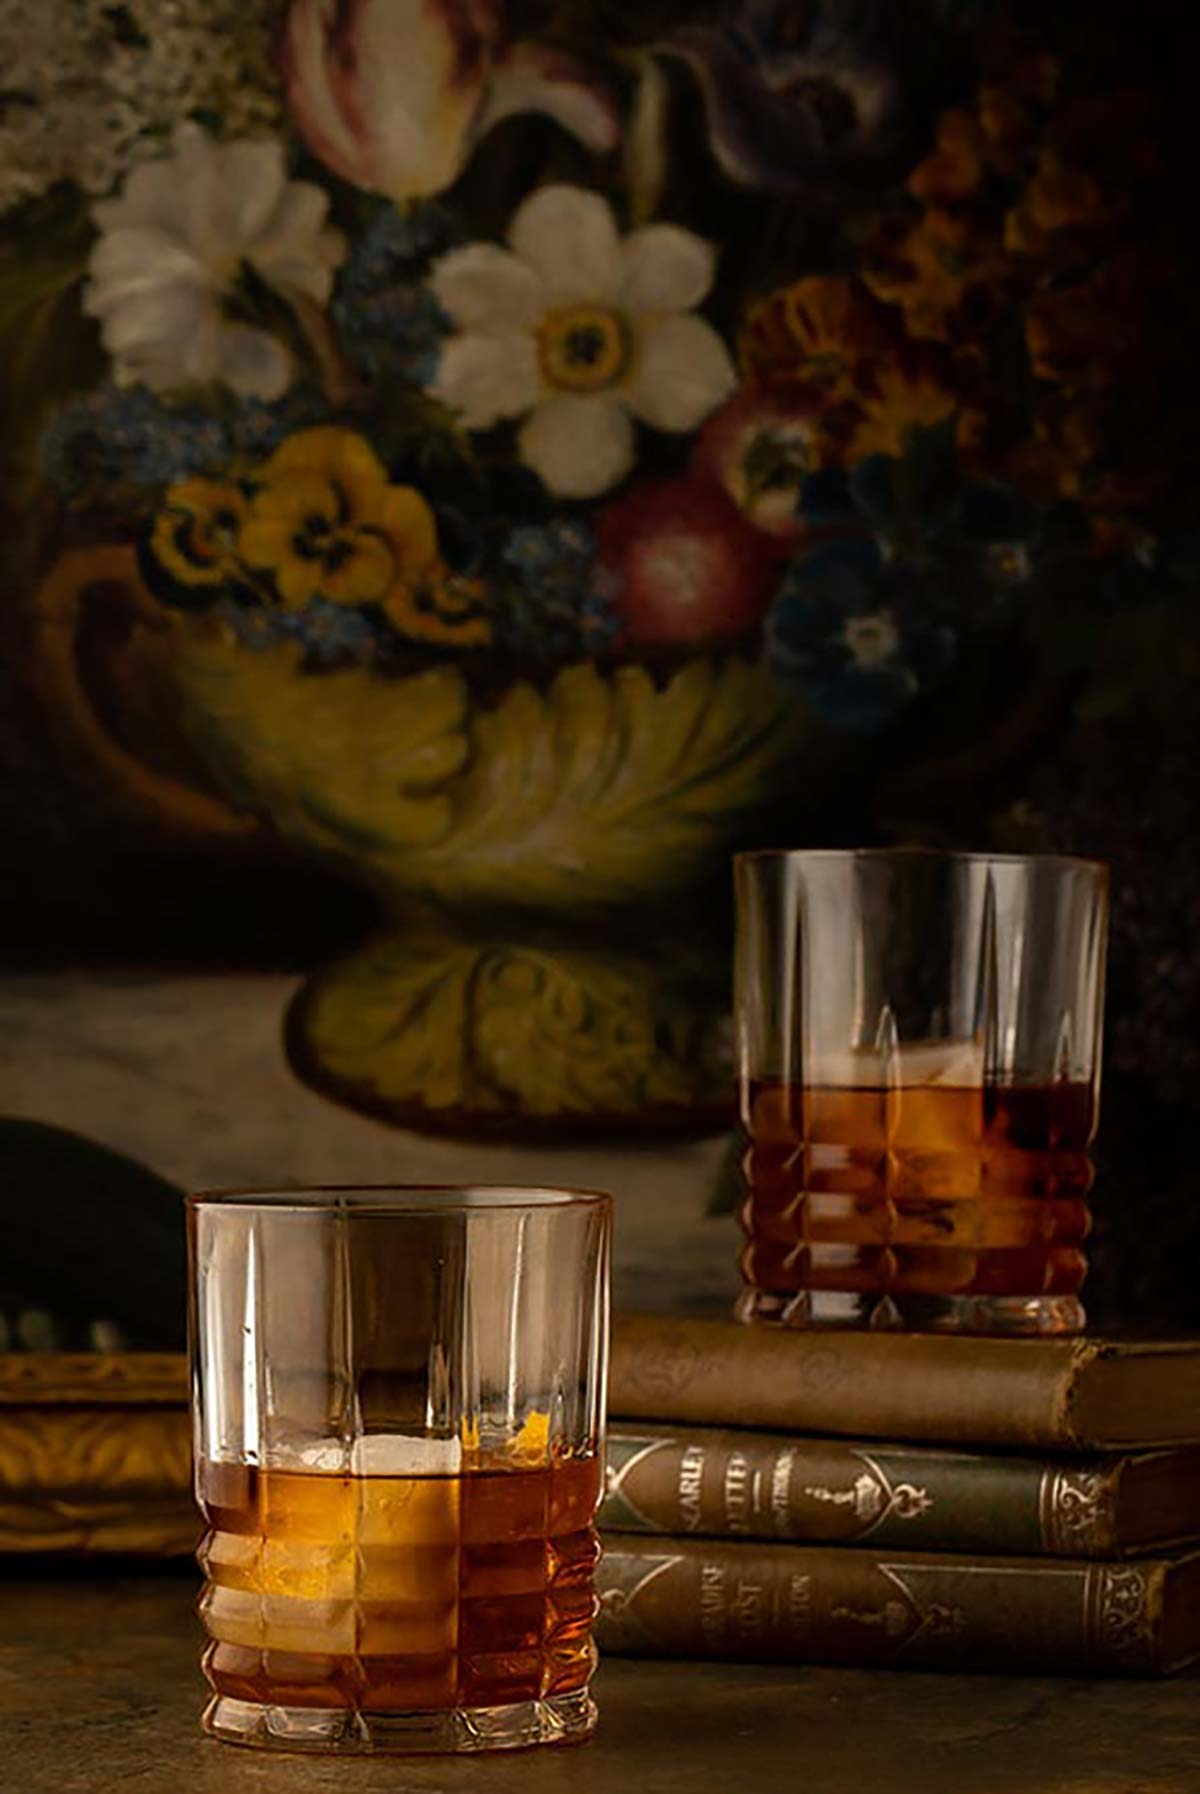 2 cocktails on a table in front of a dark floral print.